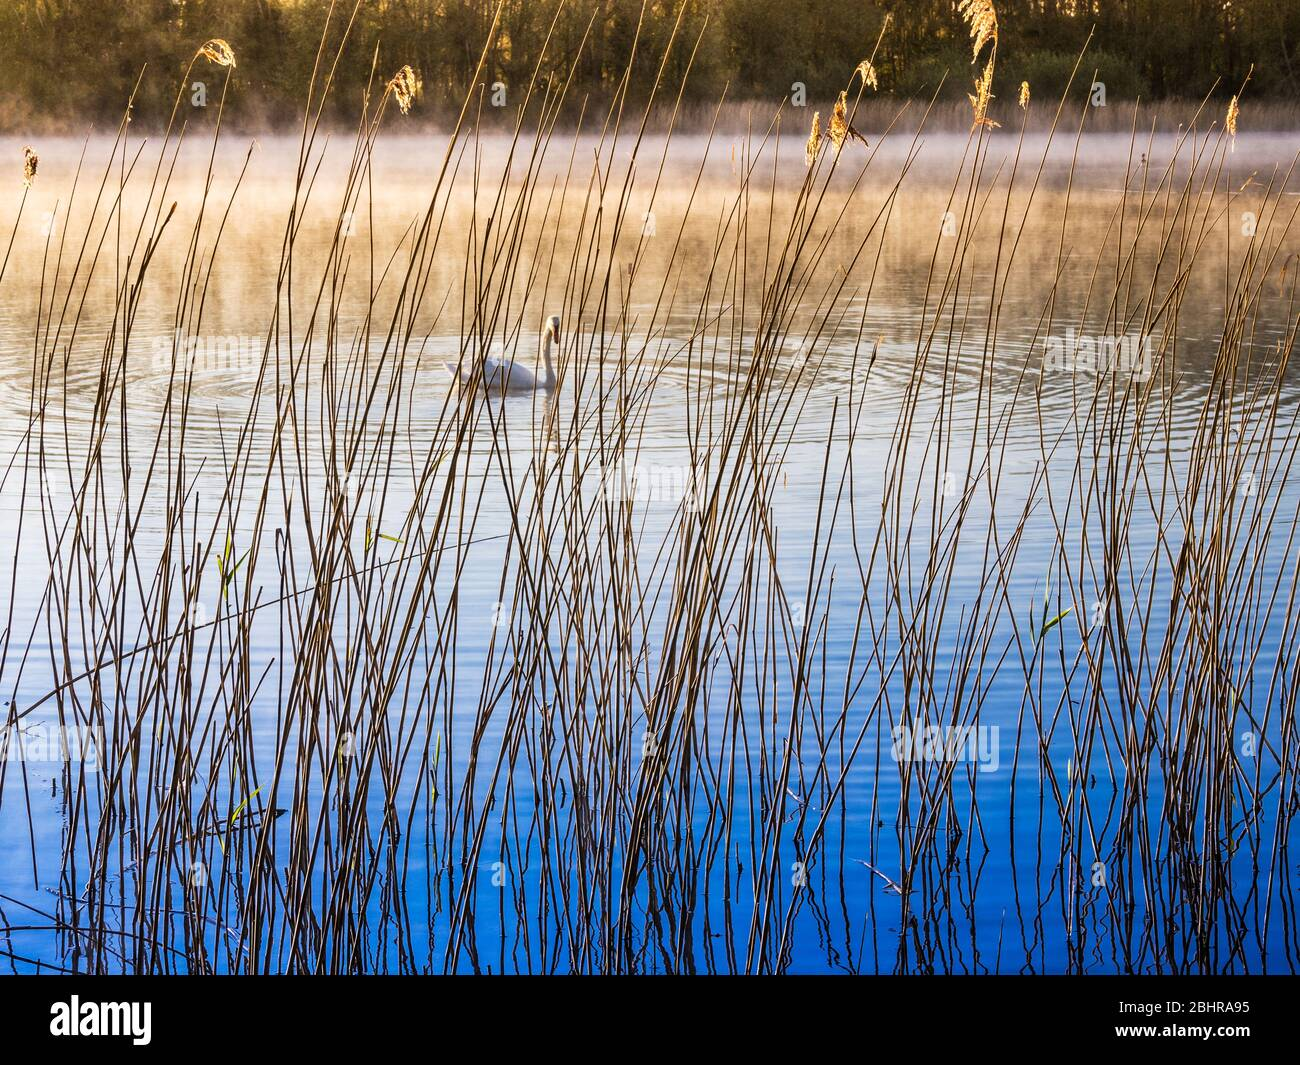 A simple, minimalist image taken through reeds at the edge of a lake on an early misty morning. Stock Photo